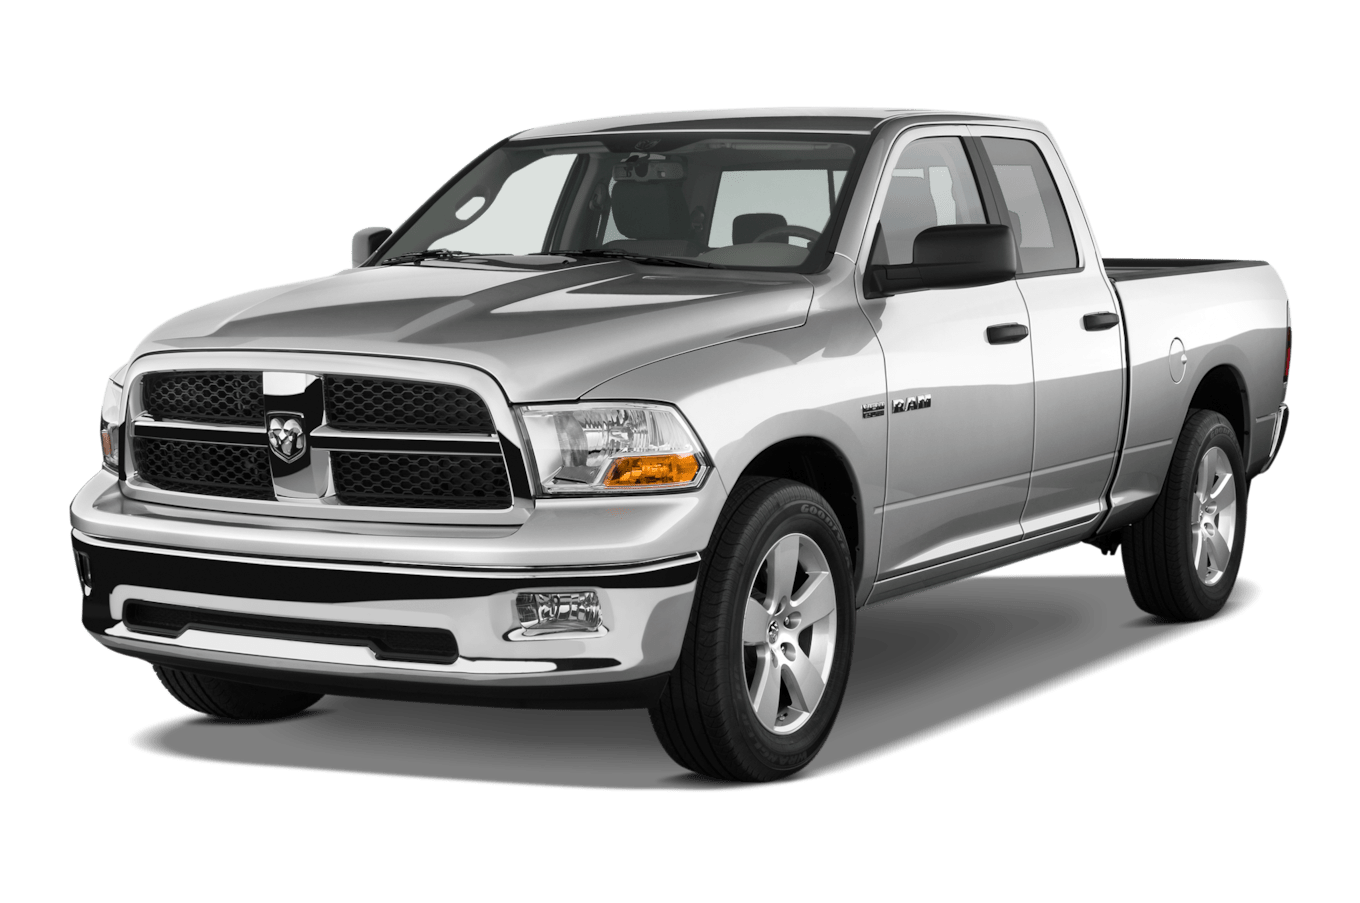 dodge ram minn kota power drive 55 wiring diagram 1500 reviews and rating motor trend